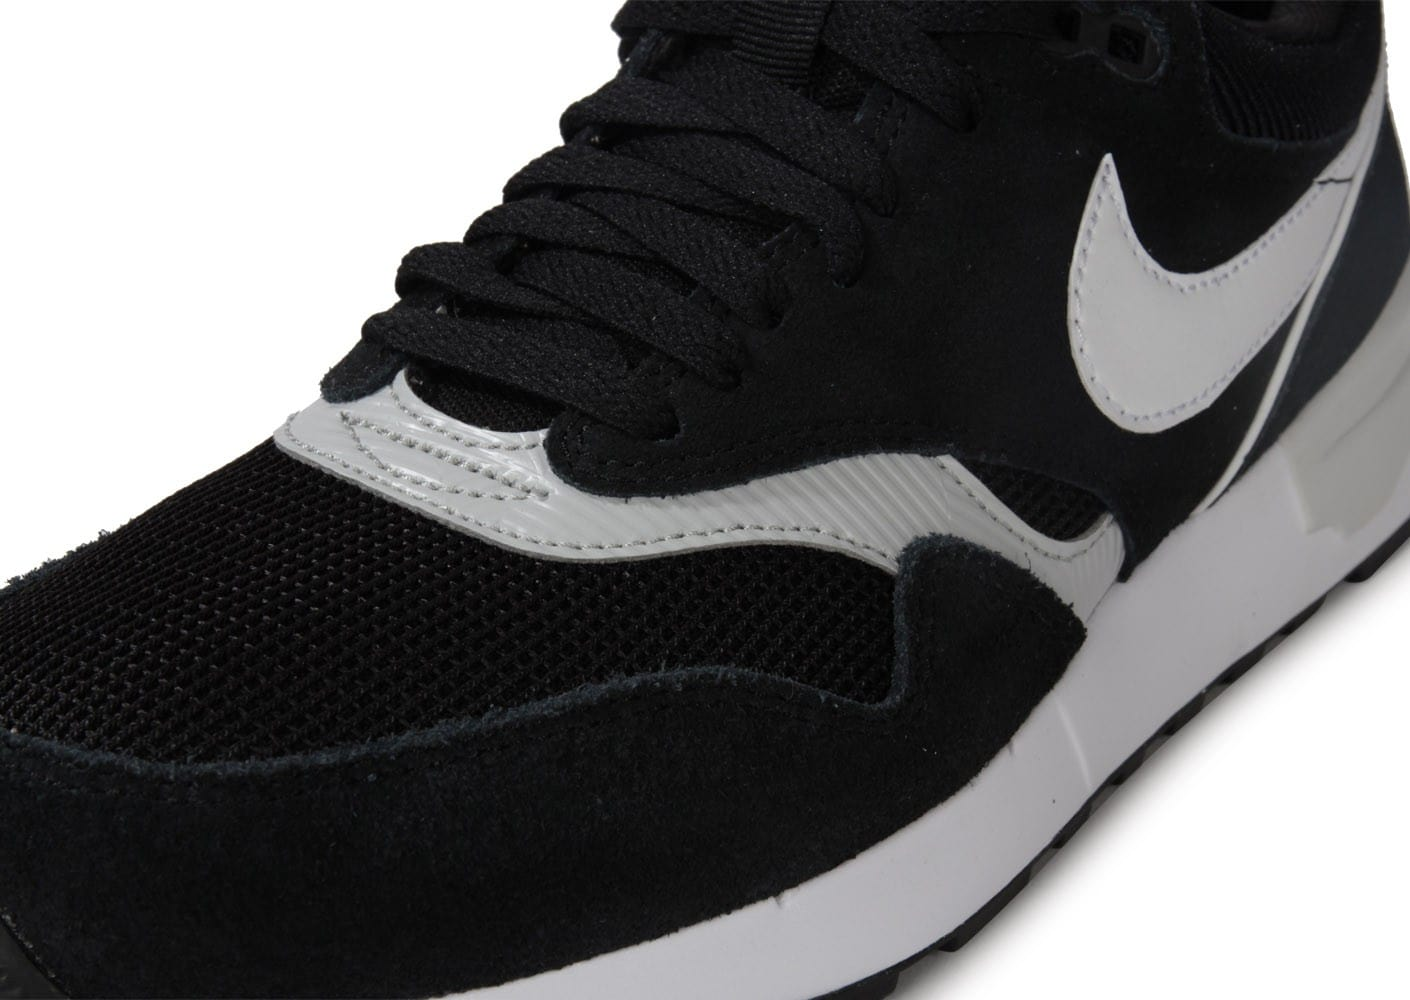 sneakers for cheap 0dcb2 04f0a ... Chaussures Nike Air Odyssey Noire Blanche vue dessus